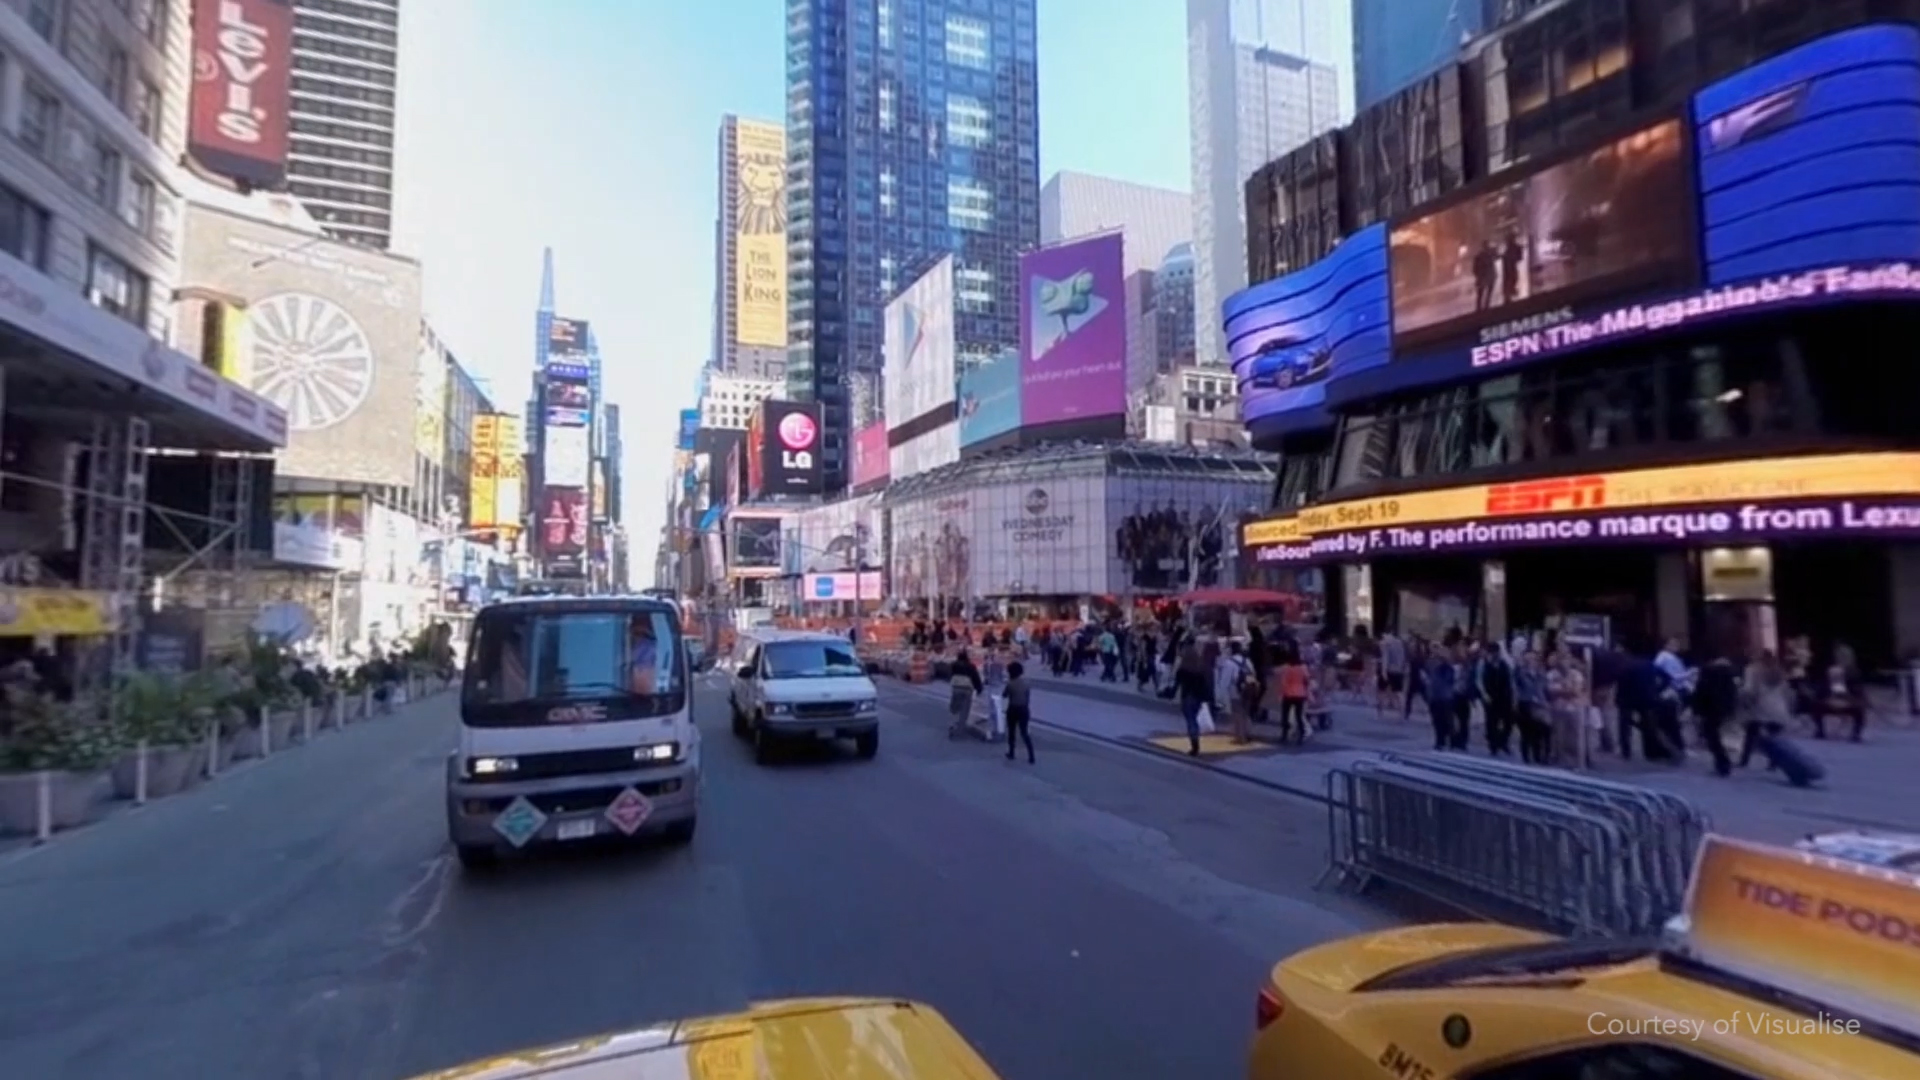 Stitching New York together for a VR tour of the city